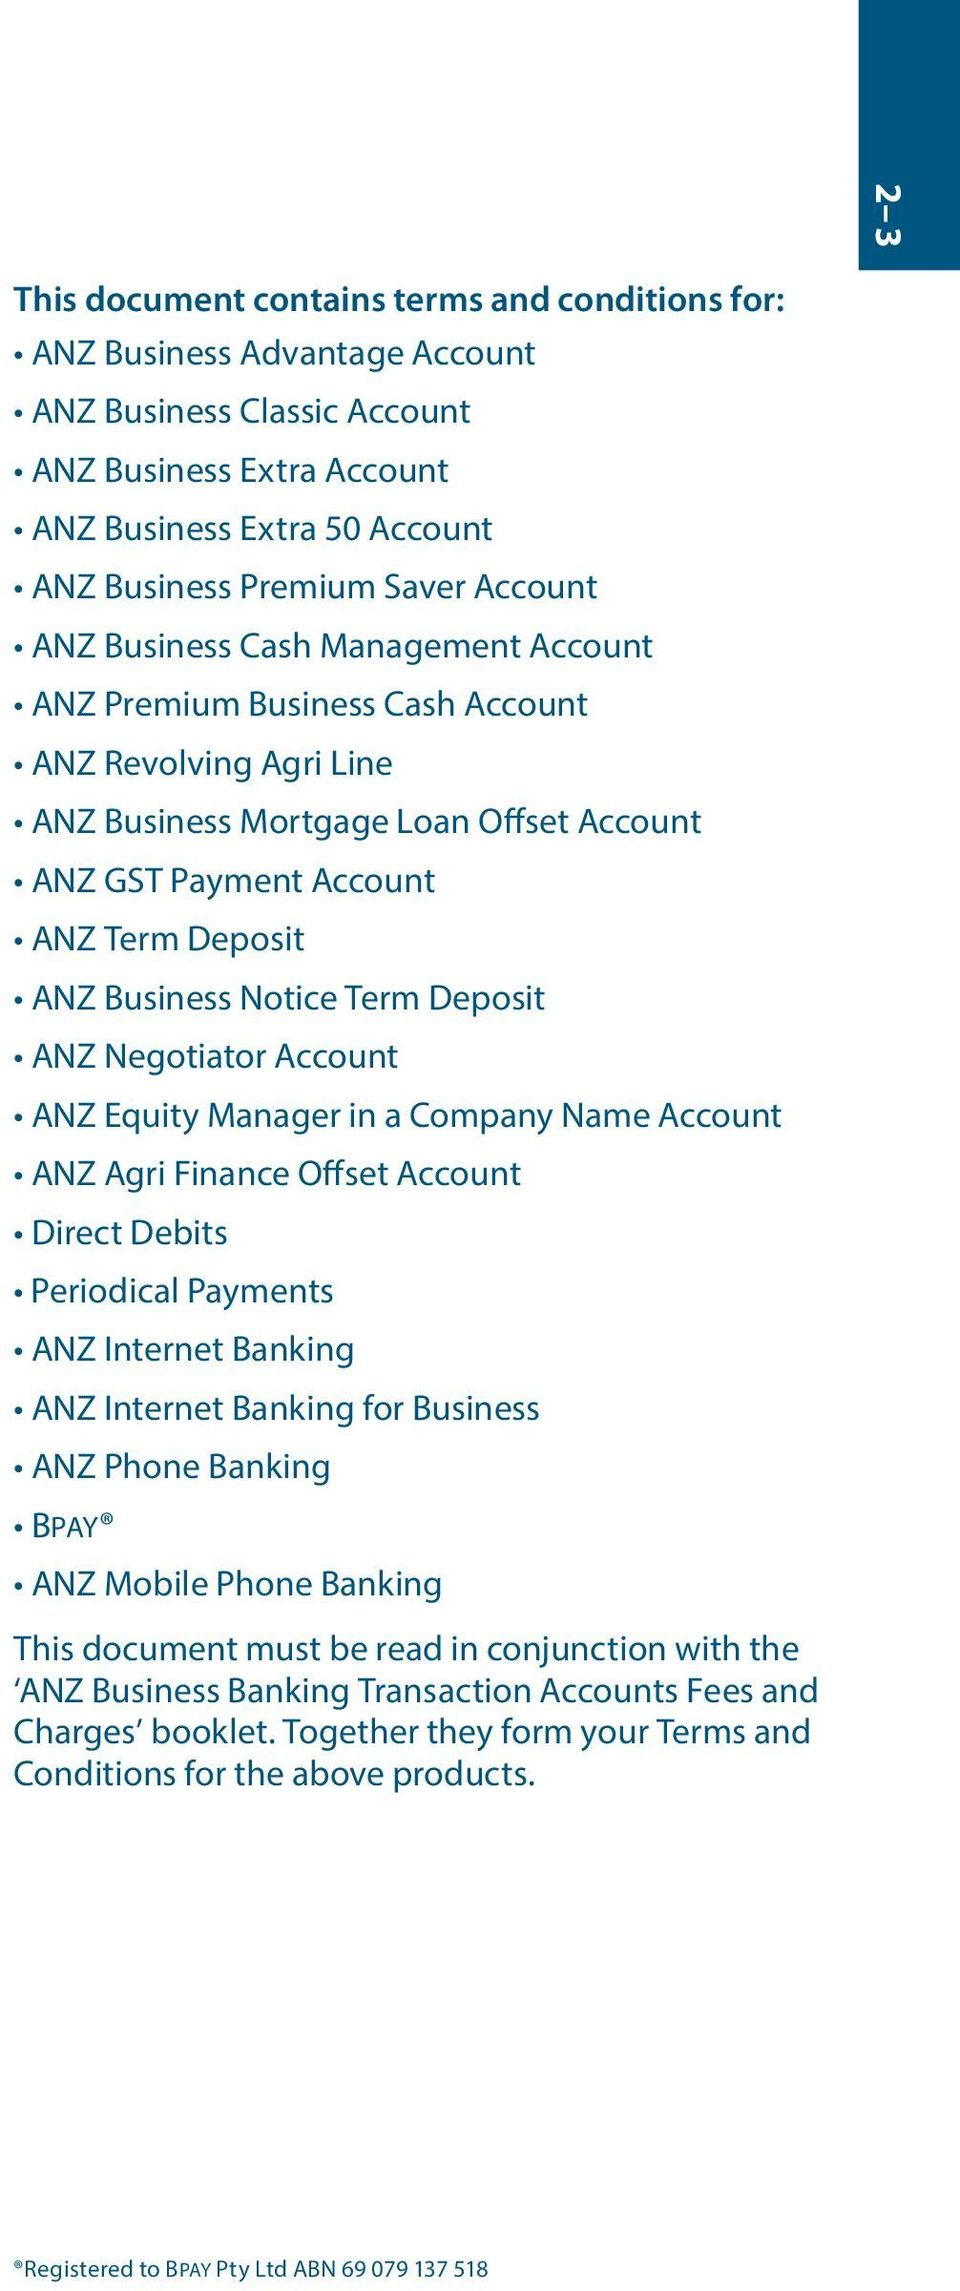 Notice Term Deposit ANZ Negotiator Account ANZ Equity Manager in a Company Name Account ANZ Agri Finance Offset Account Direct Debits Periodical Payments ANZ Internet Banking ANZ Internet Banking for